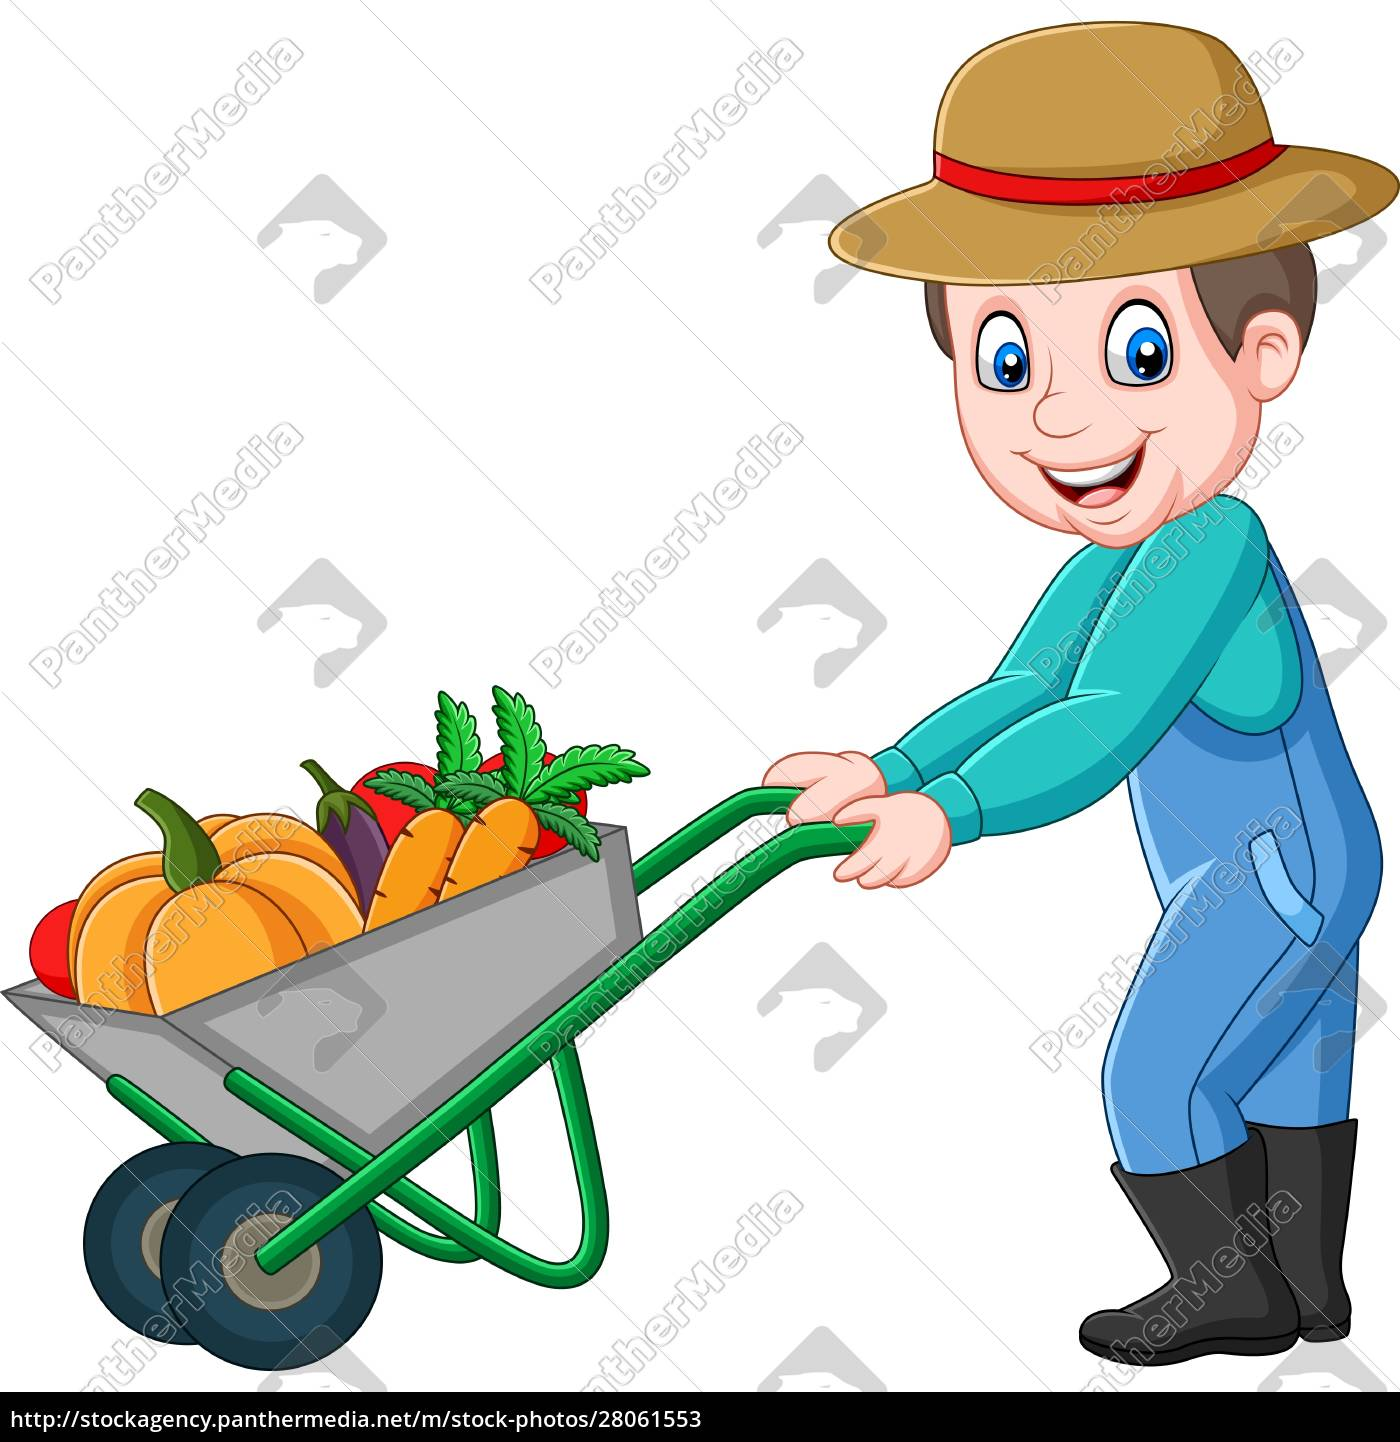 cartoon, young, farmer, pushing, a, wheelbarrow - 28061553